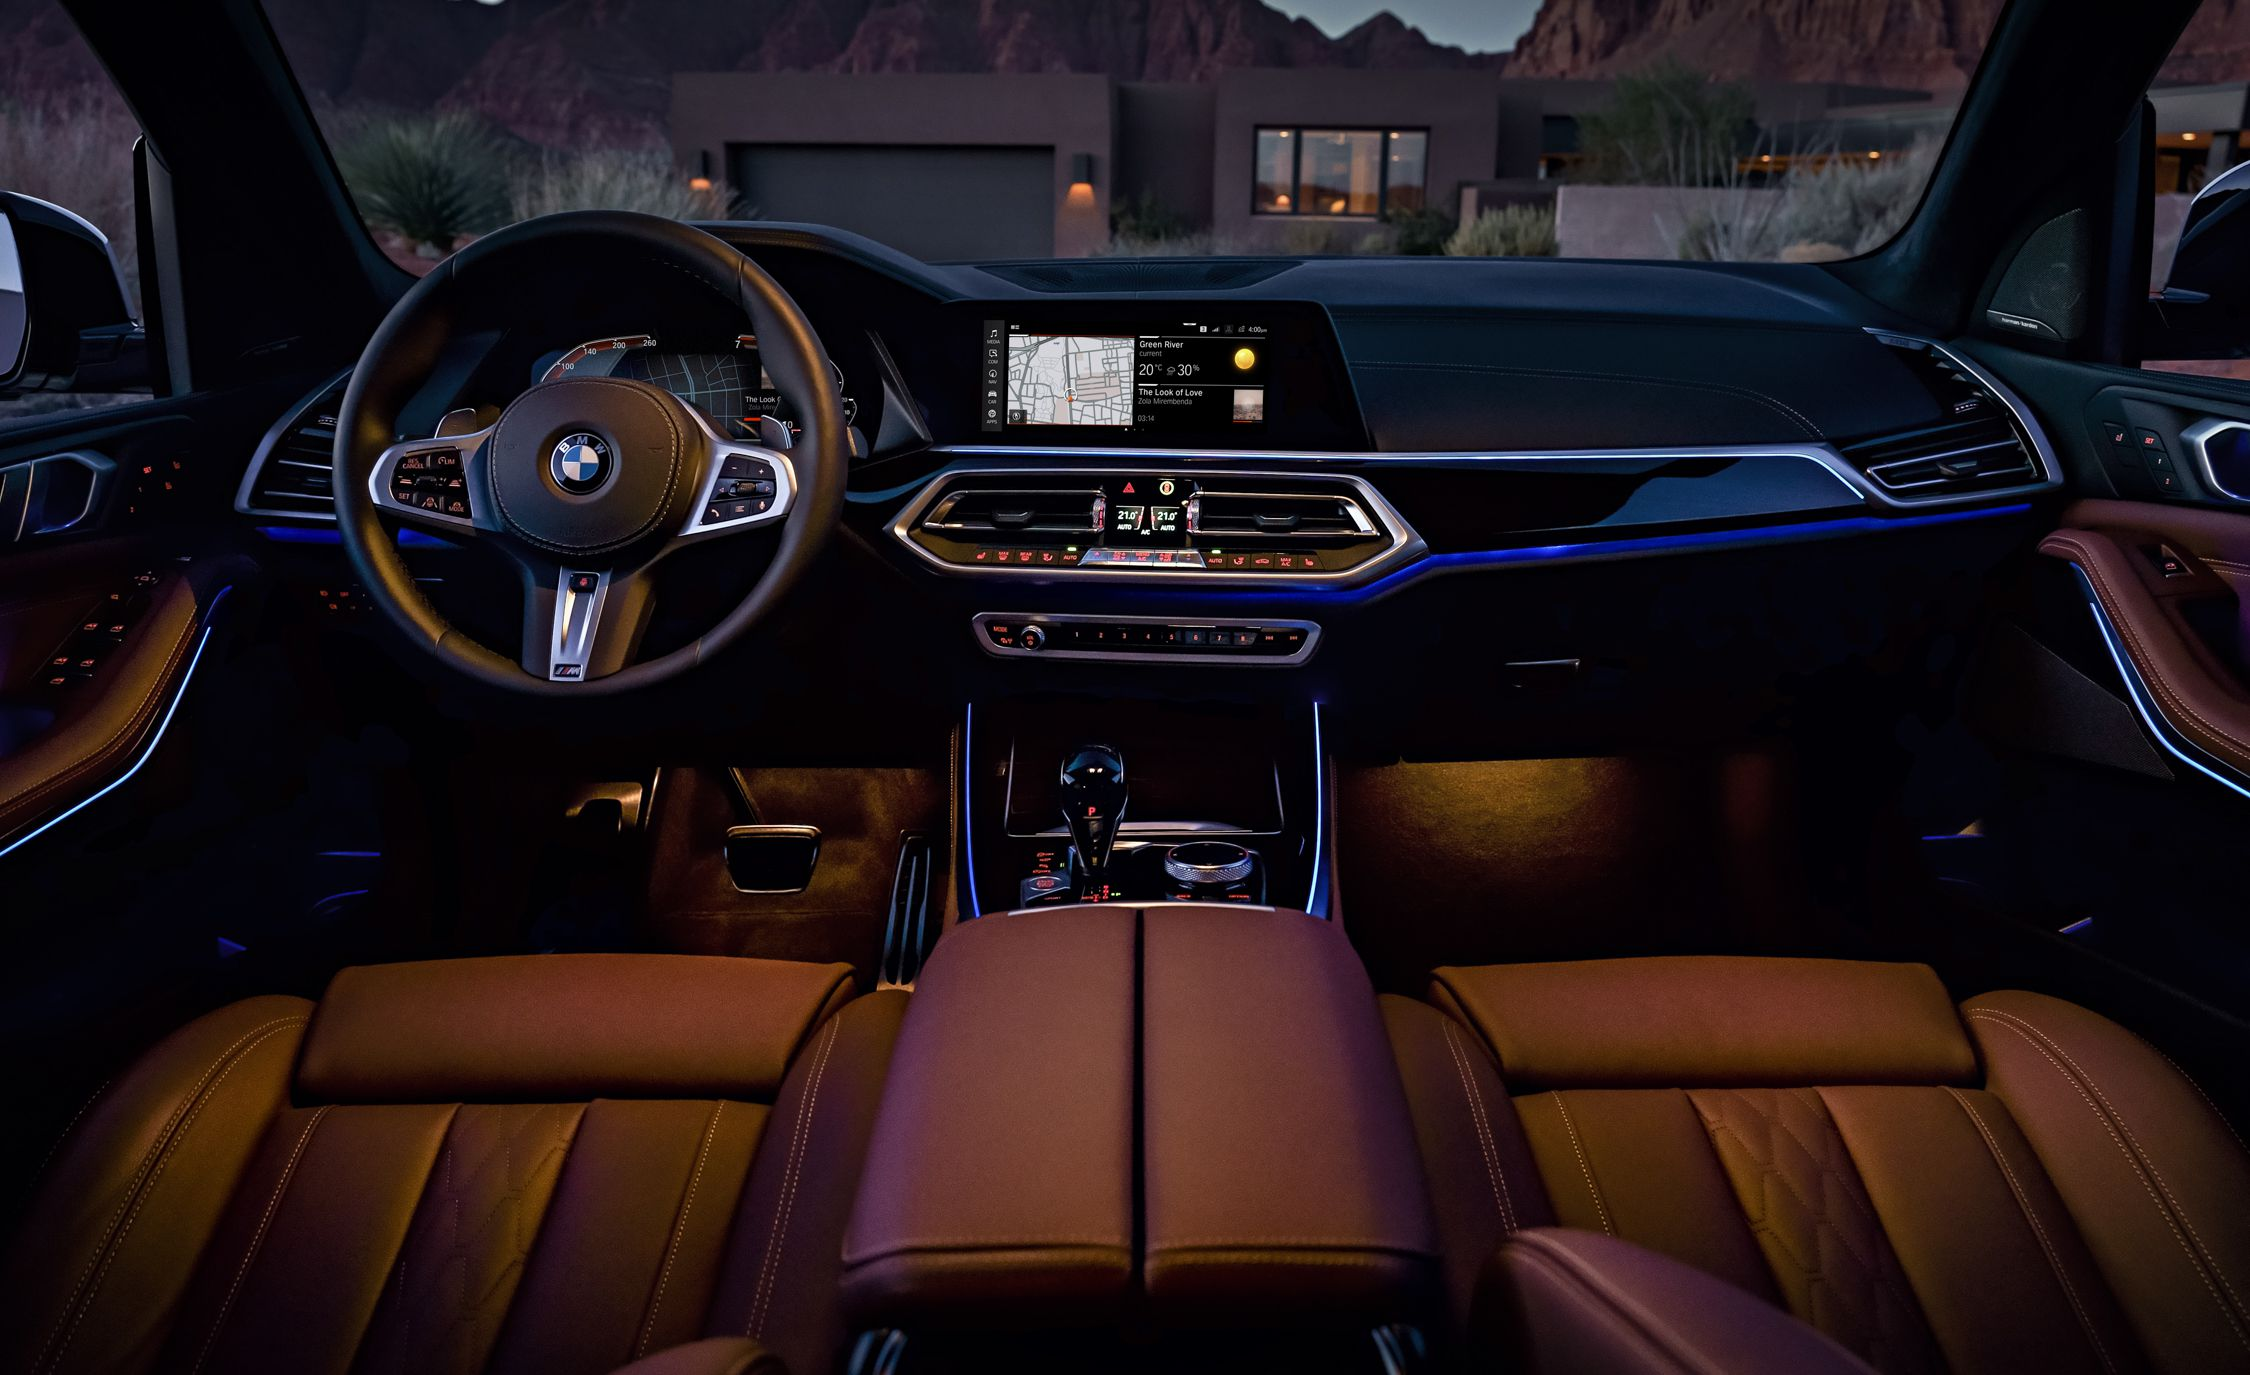 Certified Pre Owned BMW >> 2019 BMW X5 Preview in Athens, GA - Athens BMW